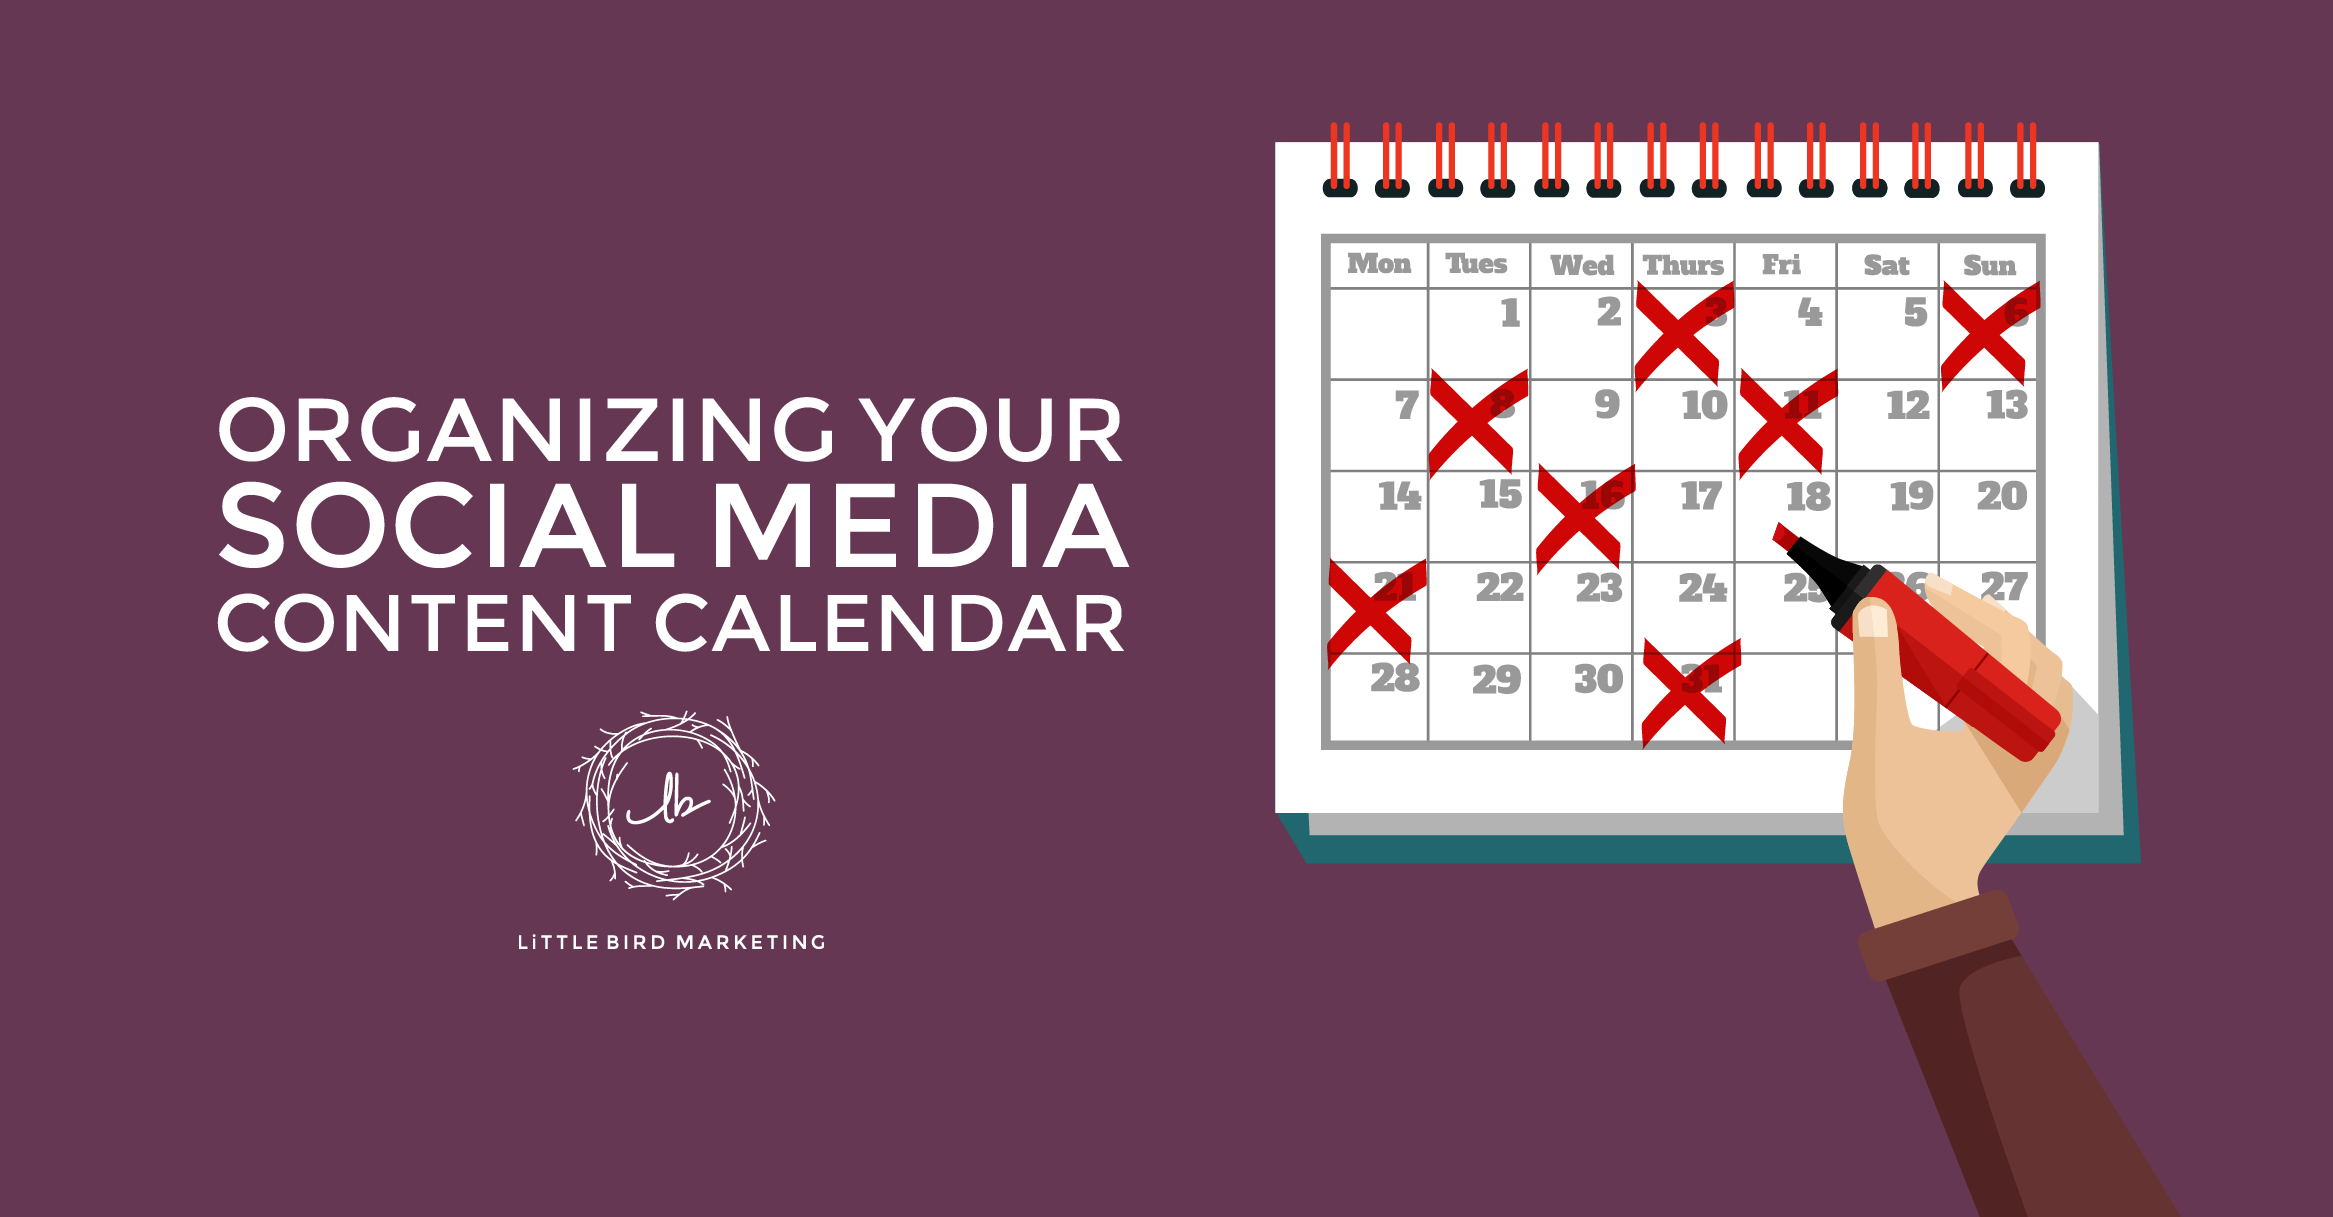 Check, check, check... Now's a great time to tidy up your social media content calendar!